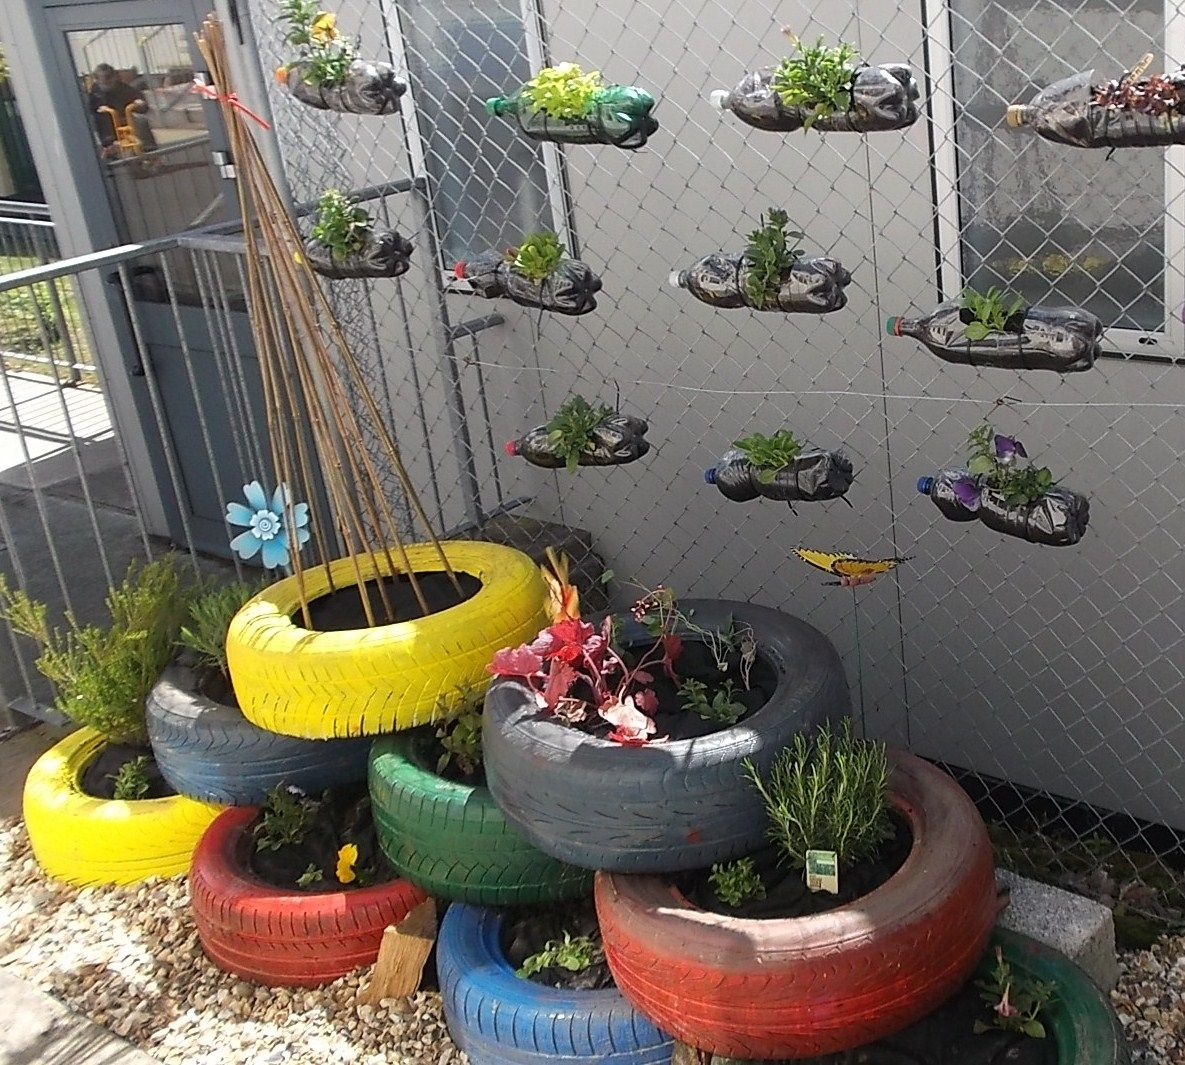 Brilliant Ideas For Repurposing Containers: Recycling And